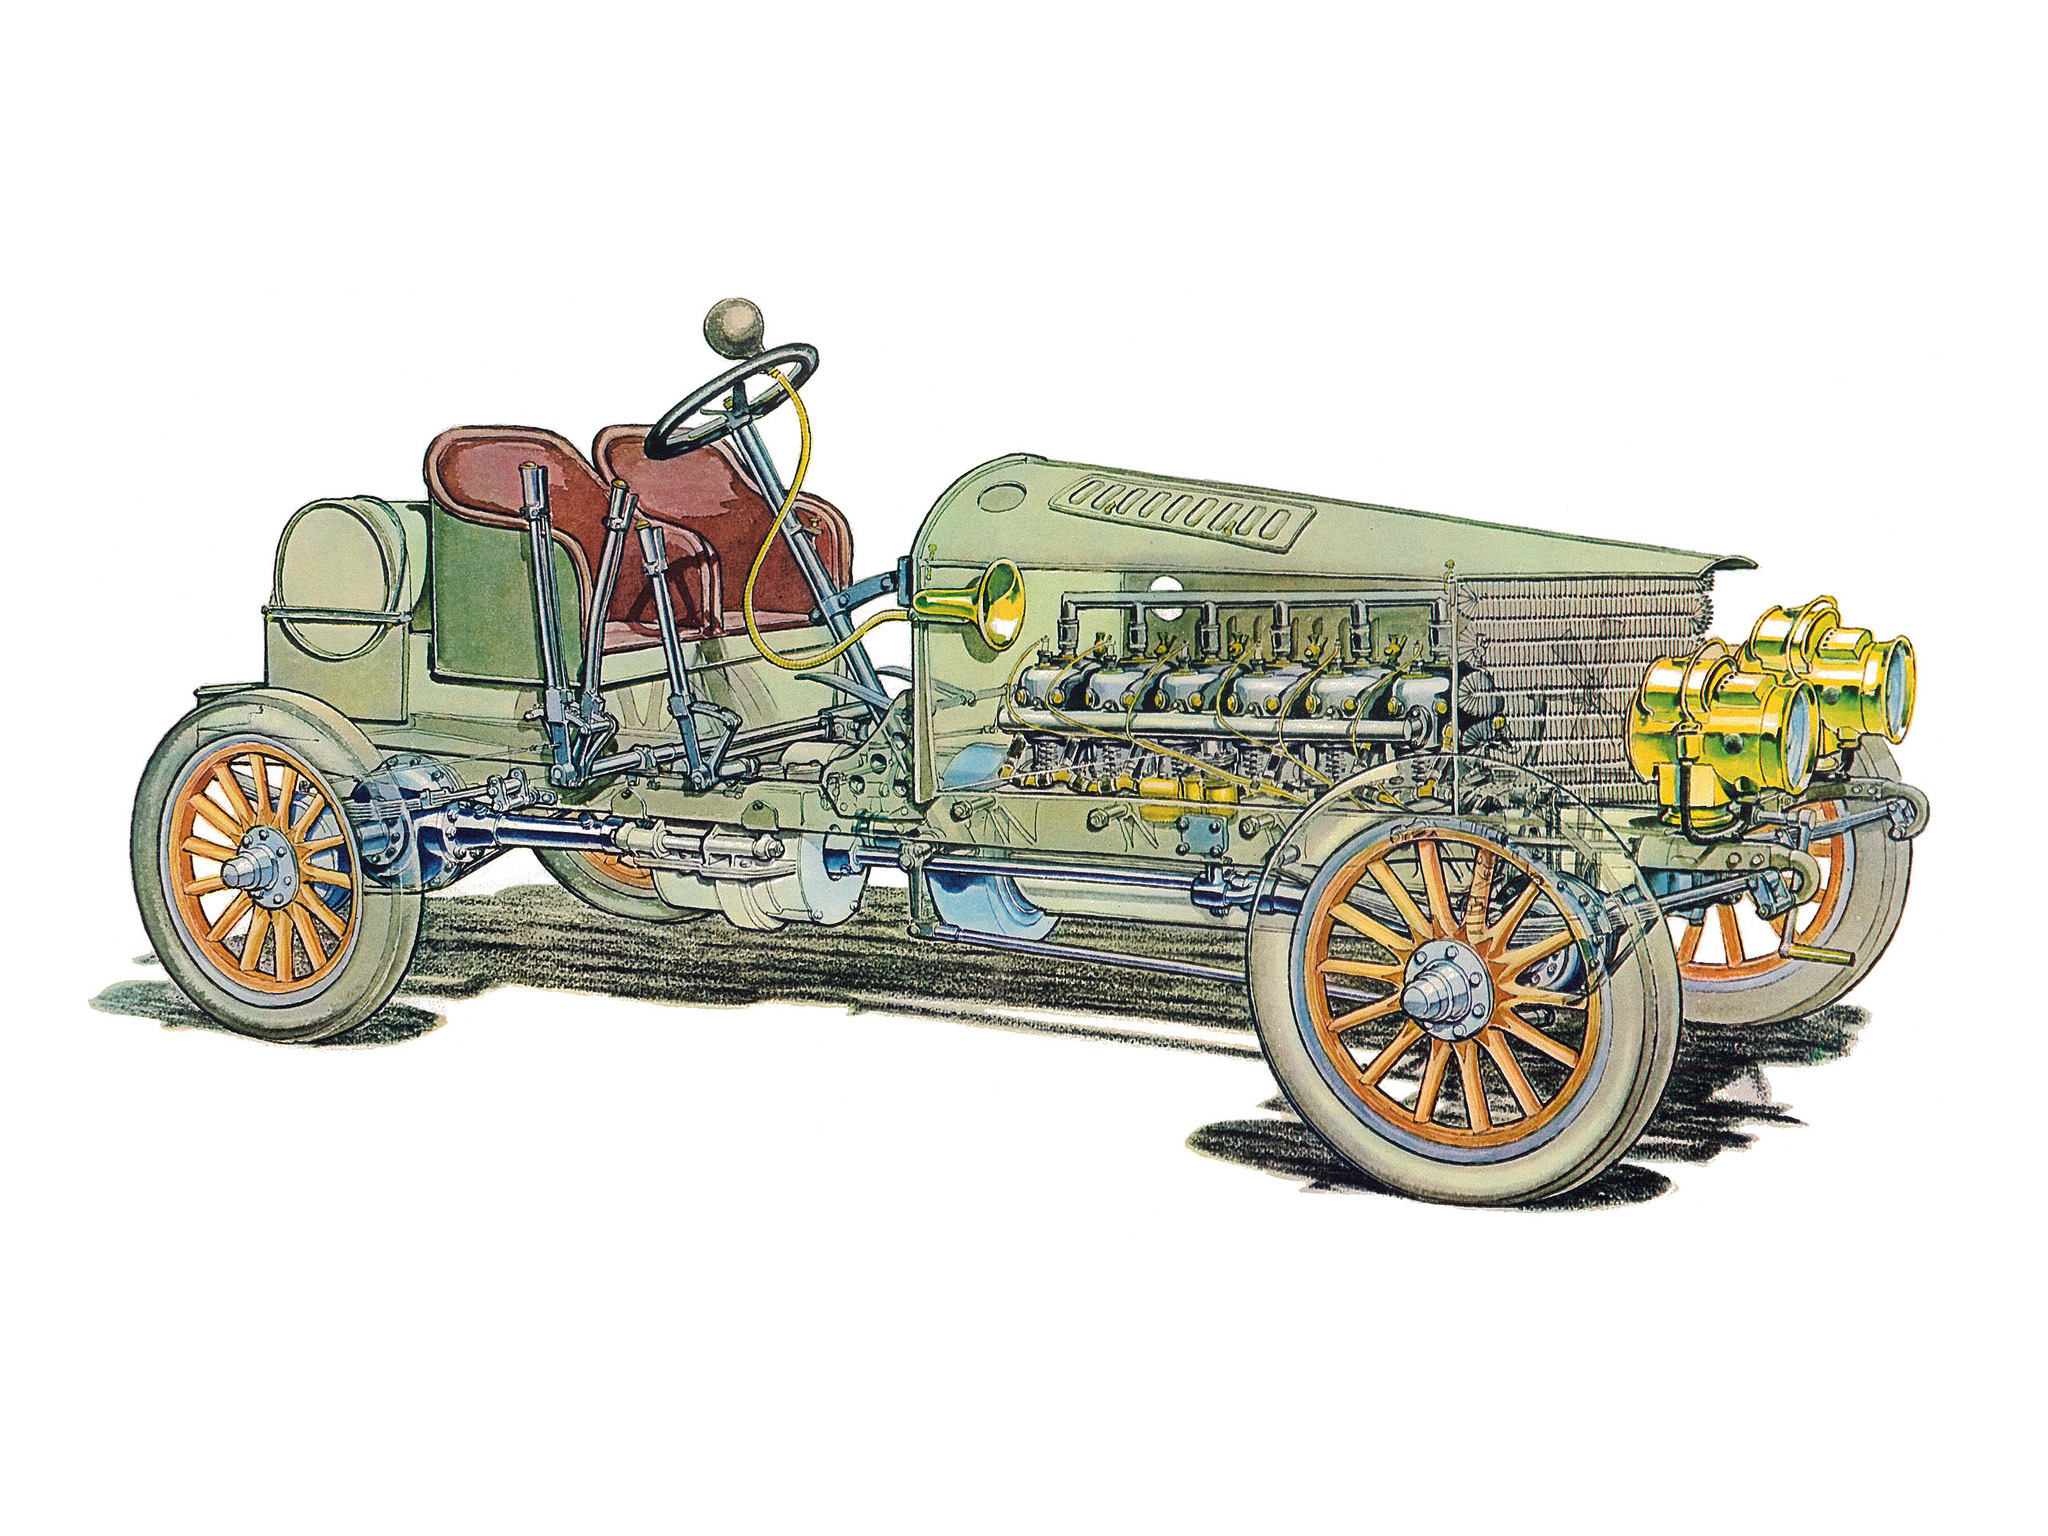 Rendering of what the inner workings of the Spyker 60 H.P. PHOTO: Wheelsage